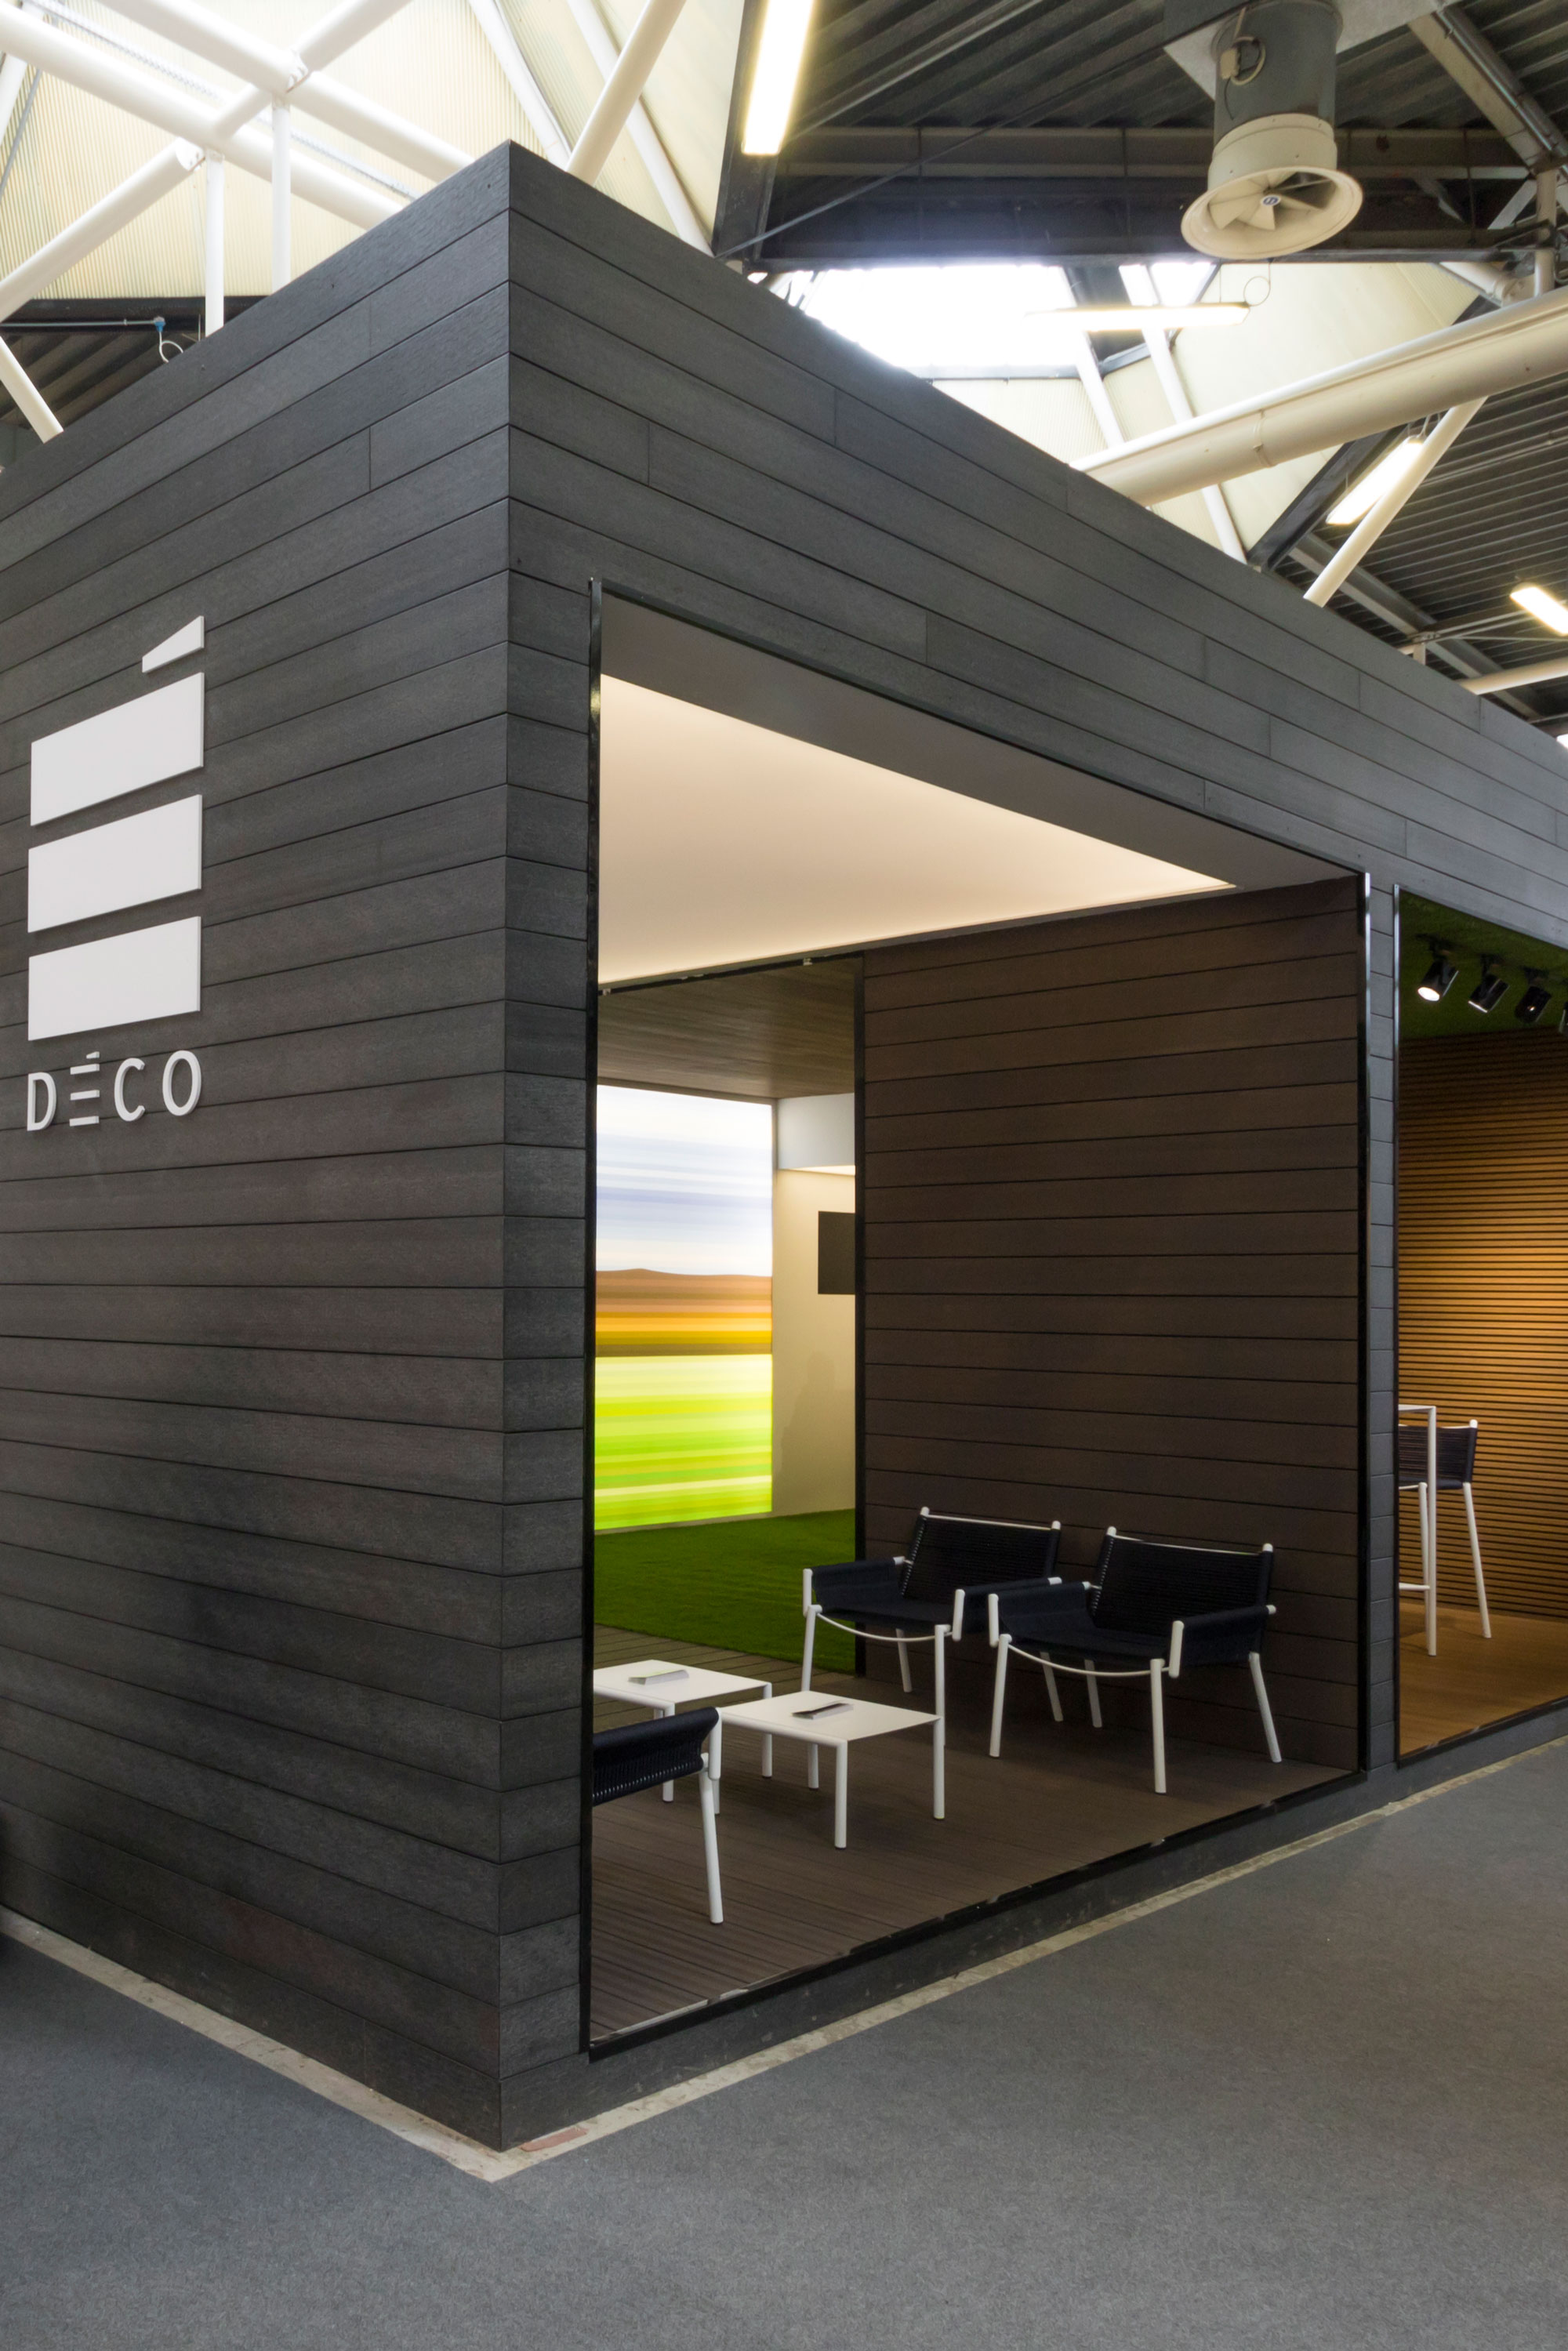 tand Cersaie Rooms Deco, architecture